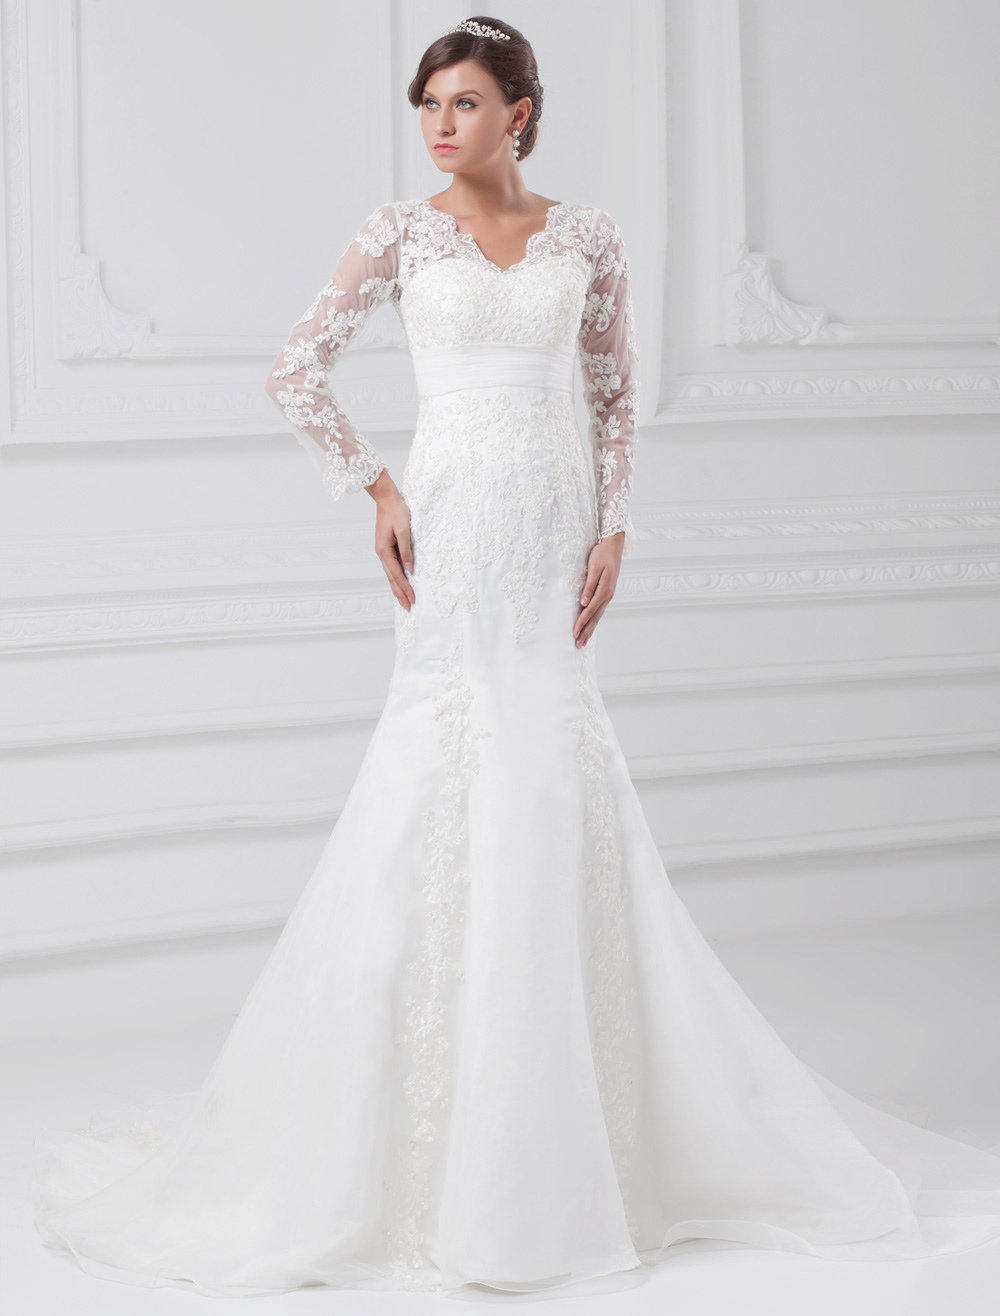 White Wedding Dress Mermaid Lace Zipper Applique Wedding Gown